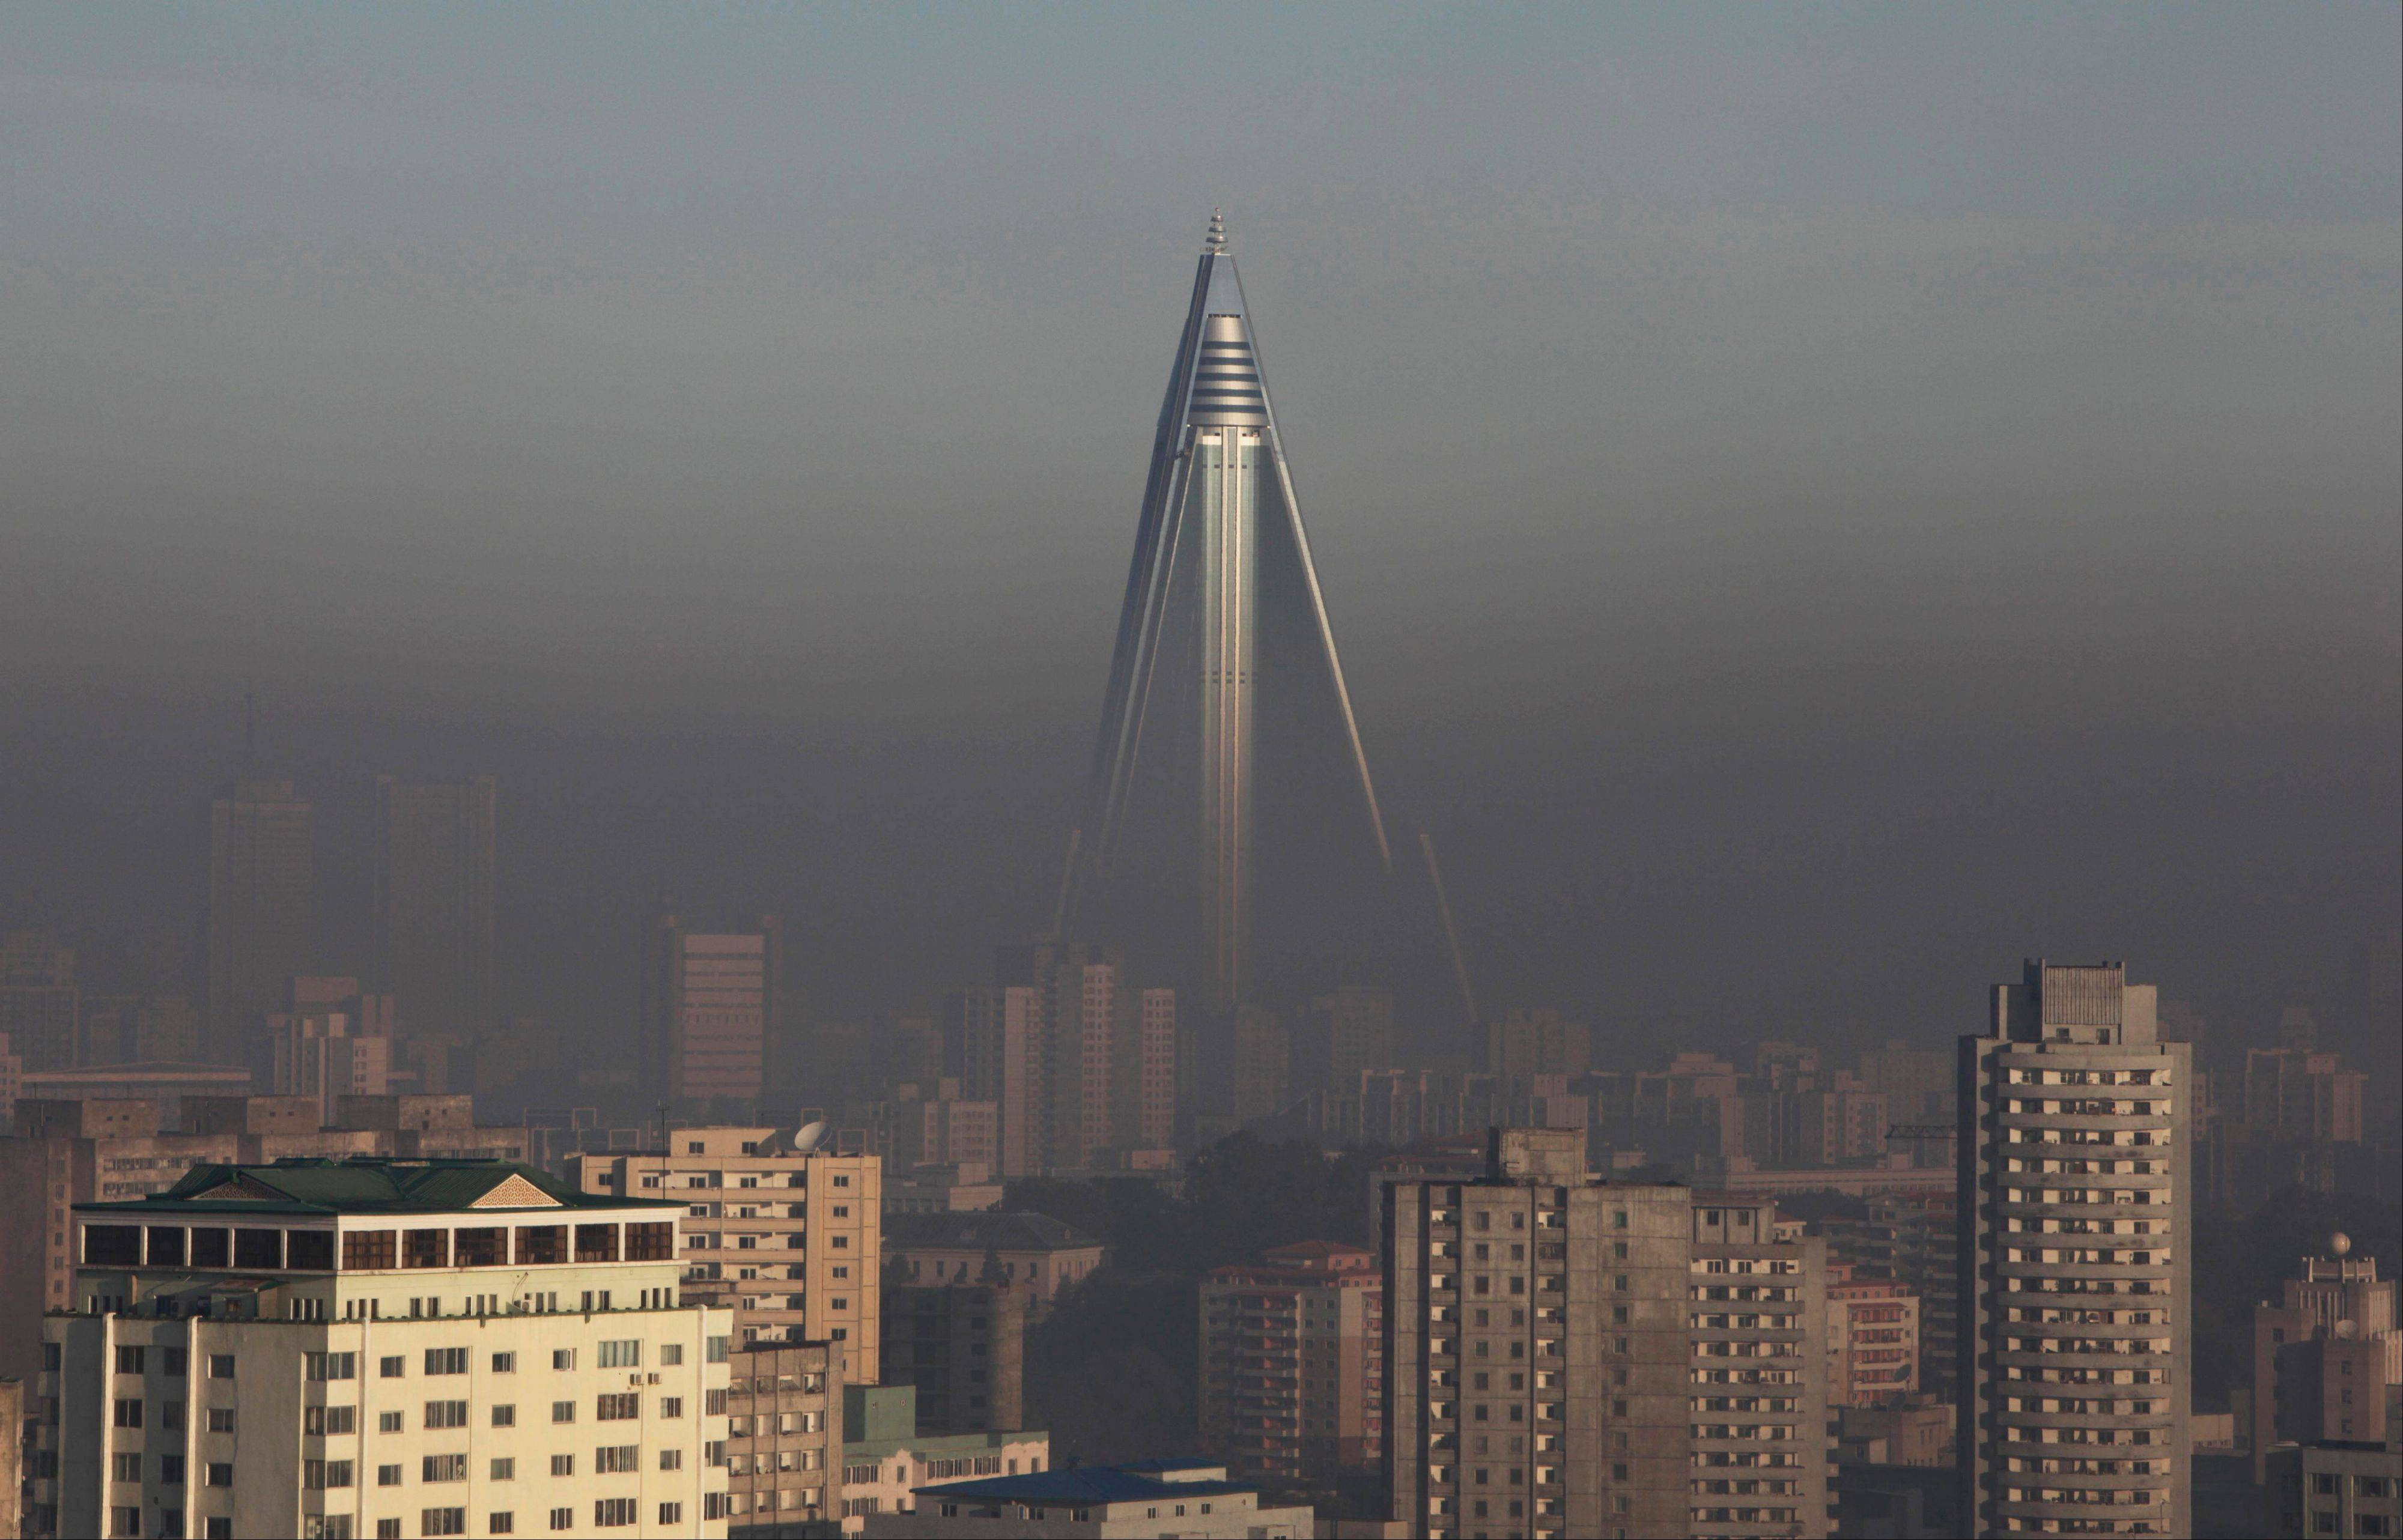 In October 2011, the 105-story Ryugyong Hotel stands above others in Pyongyang, North Korea. Throughout the capital, and in cities and towns across the country, construction workers are trying to finish building renovations and major projects as the country prepares for celebrations on April 15 to mark the 100th anniversary of the birth of North Korea founder Kim Il Sung.